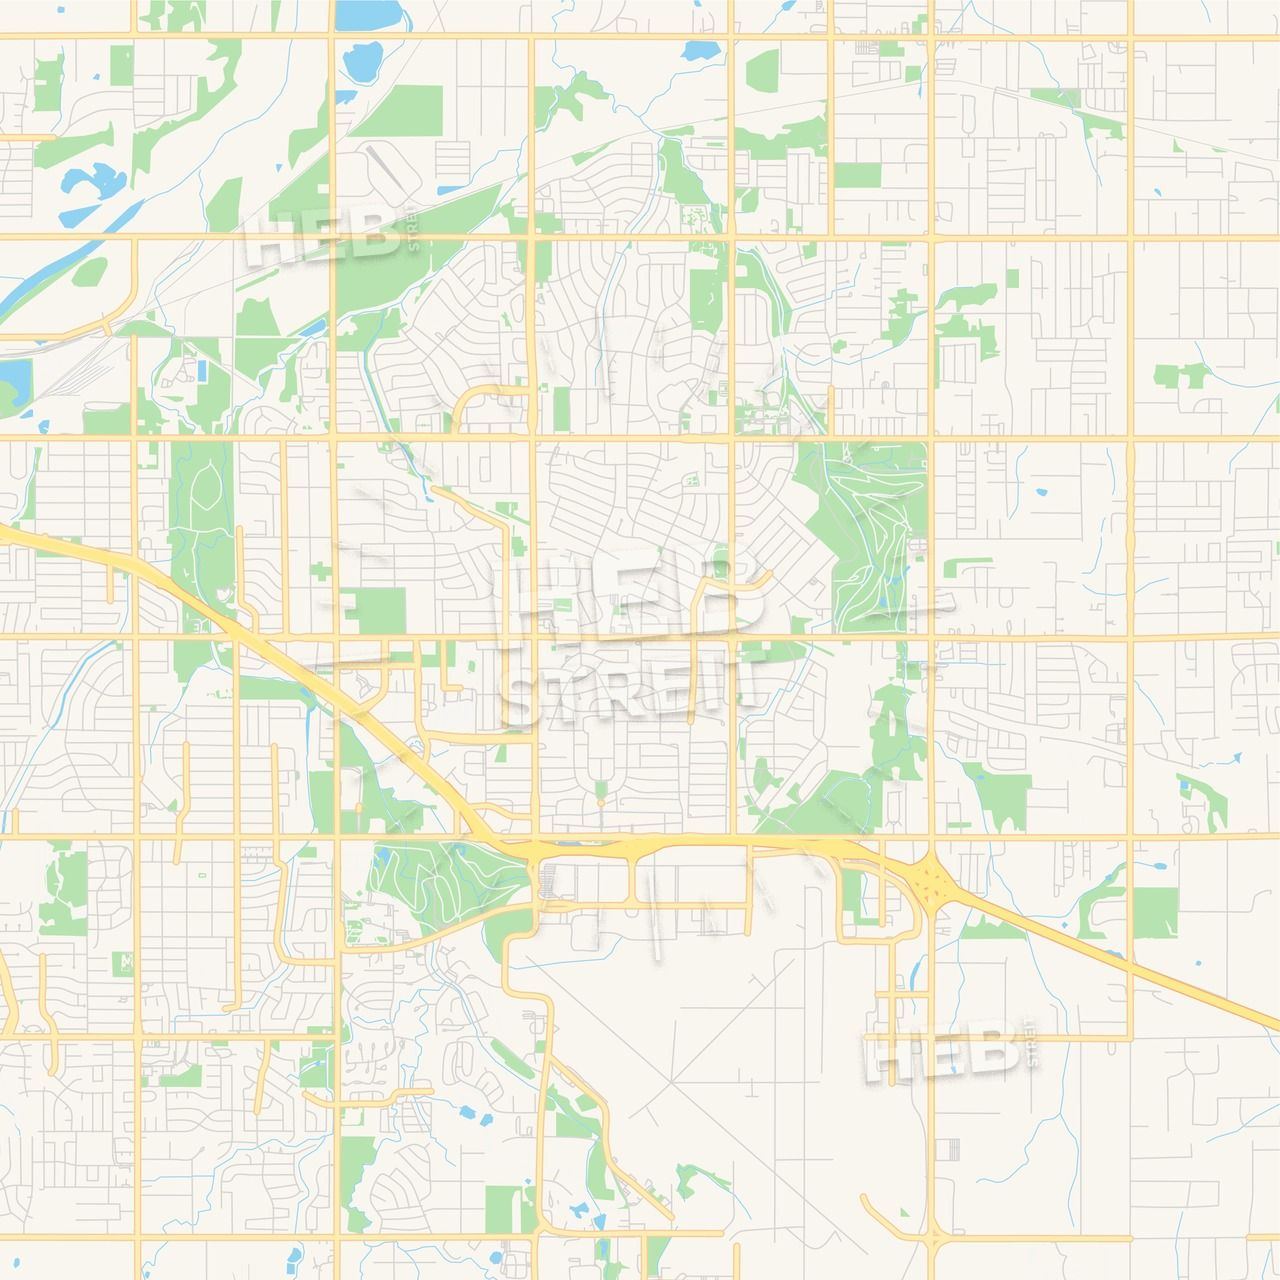 Empty vector map of Midwest City, Oklahoma, USA This printable road